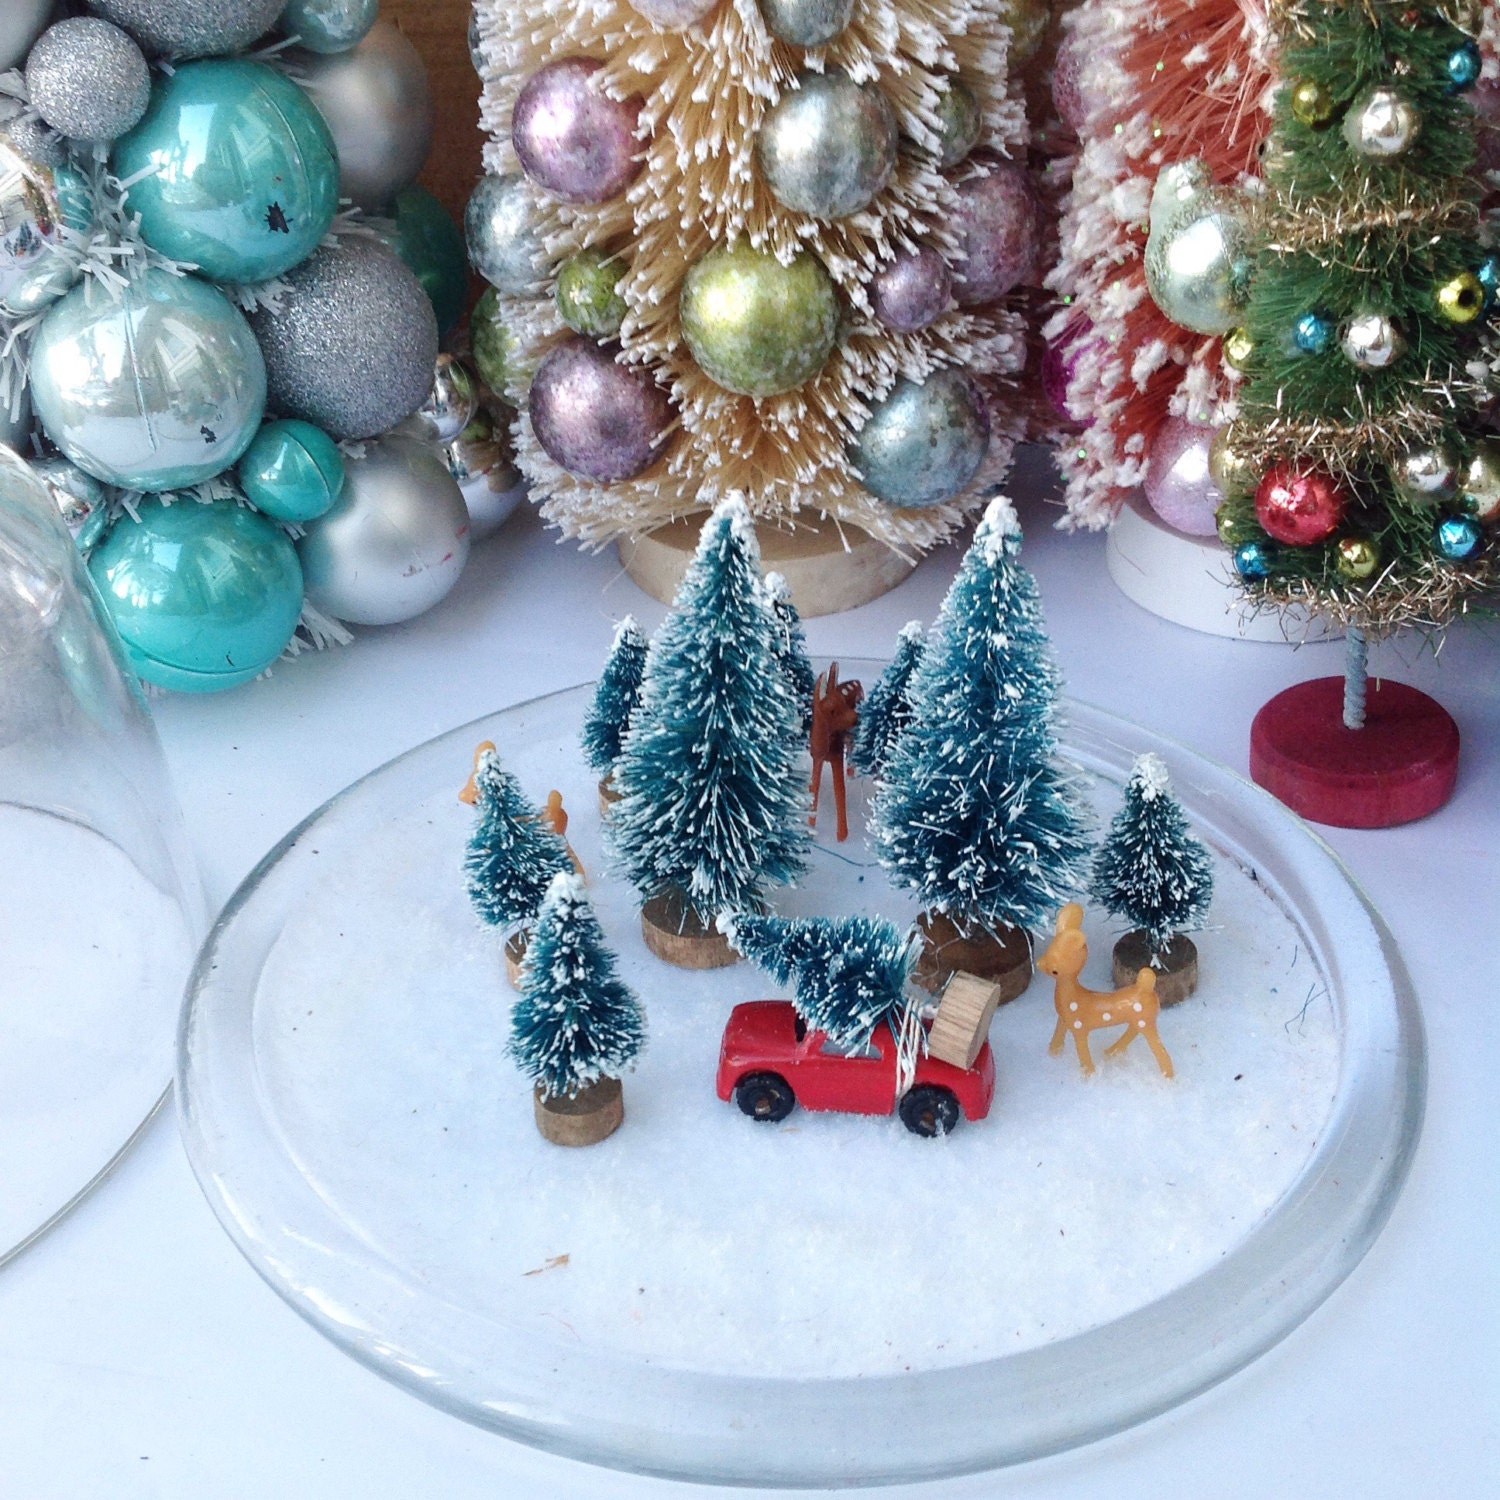 Christmas tree shopping deer vintage red car kitschy Christmas | Etsy